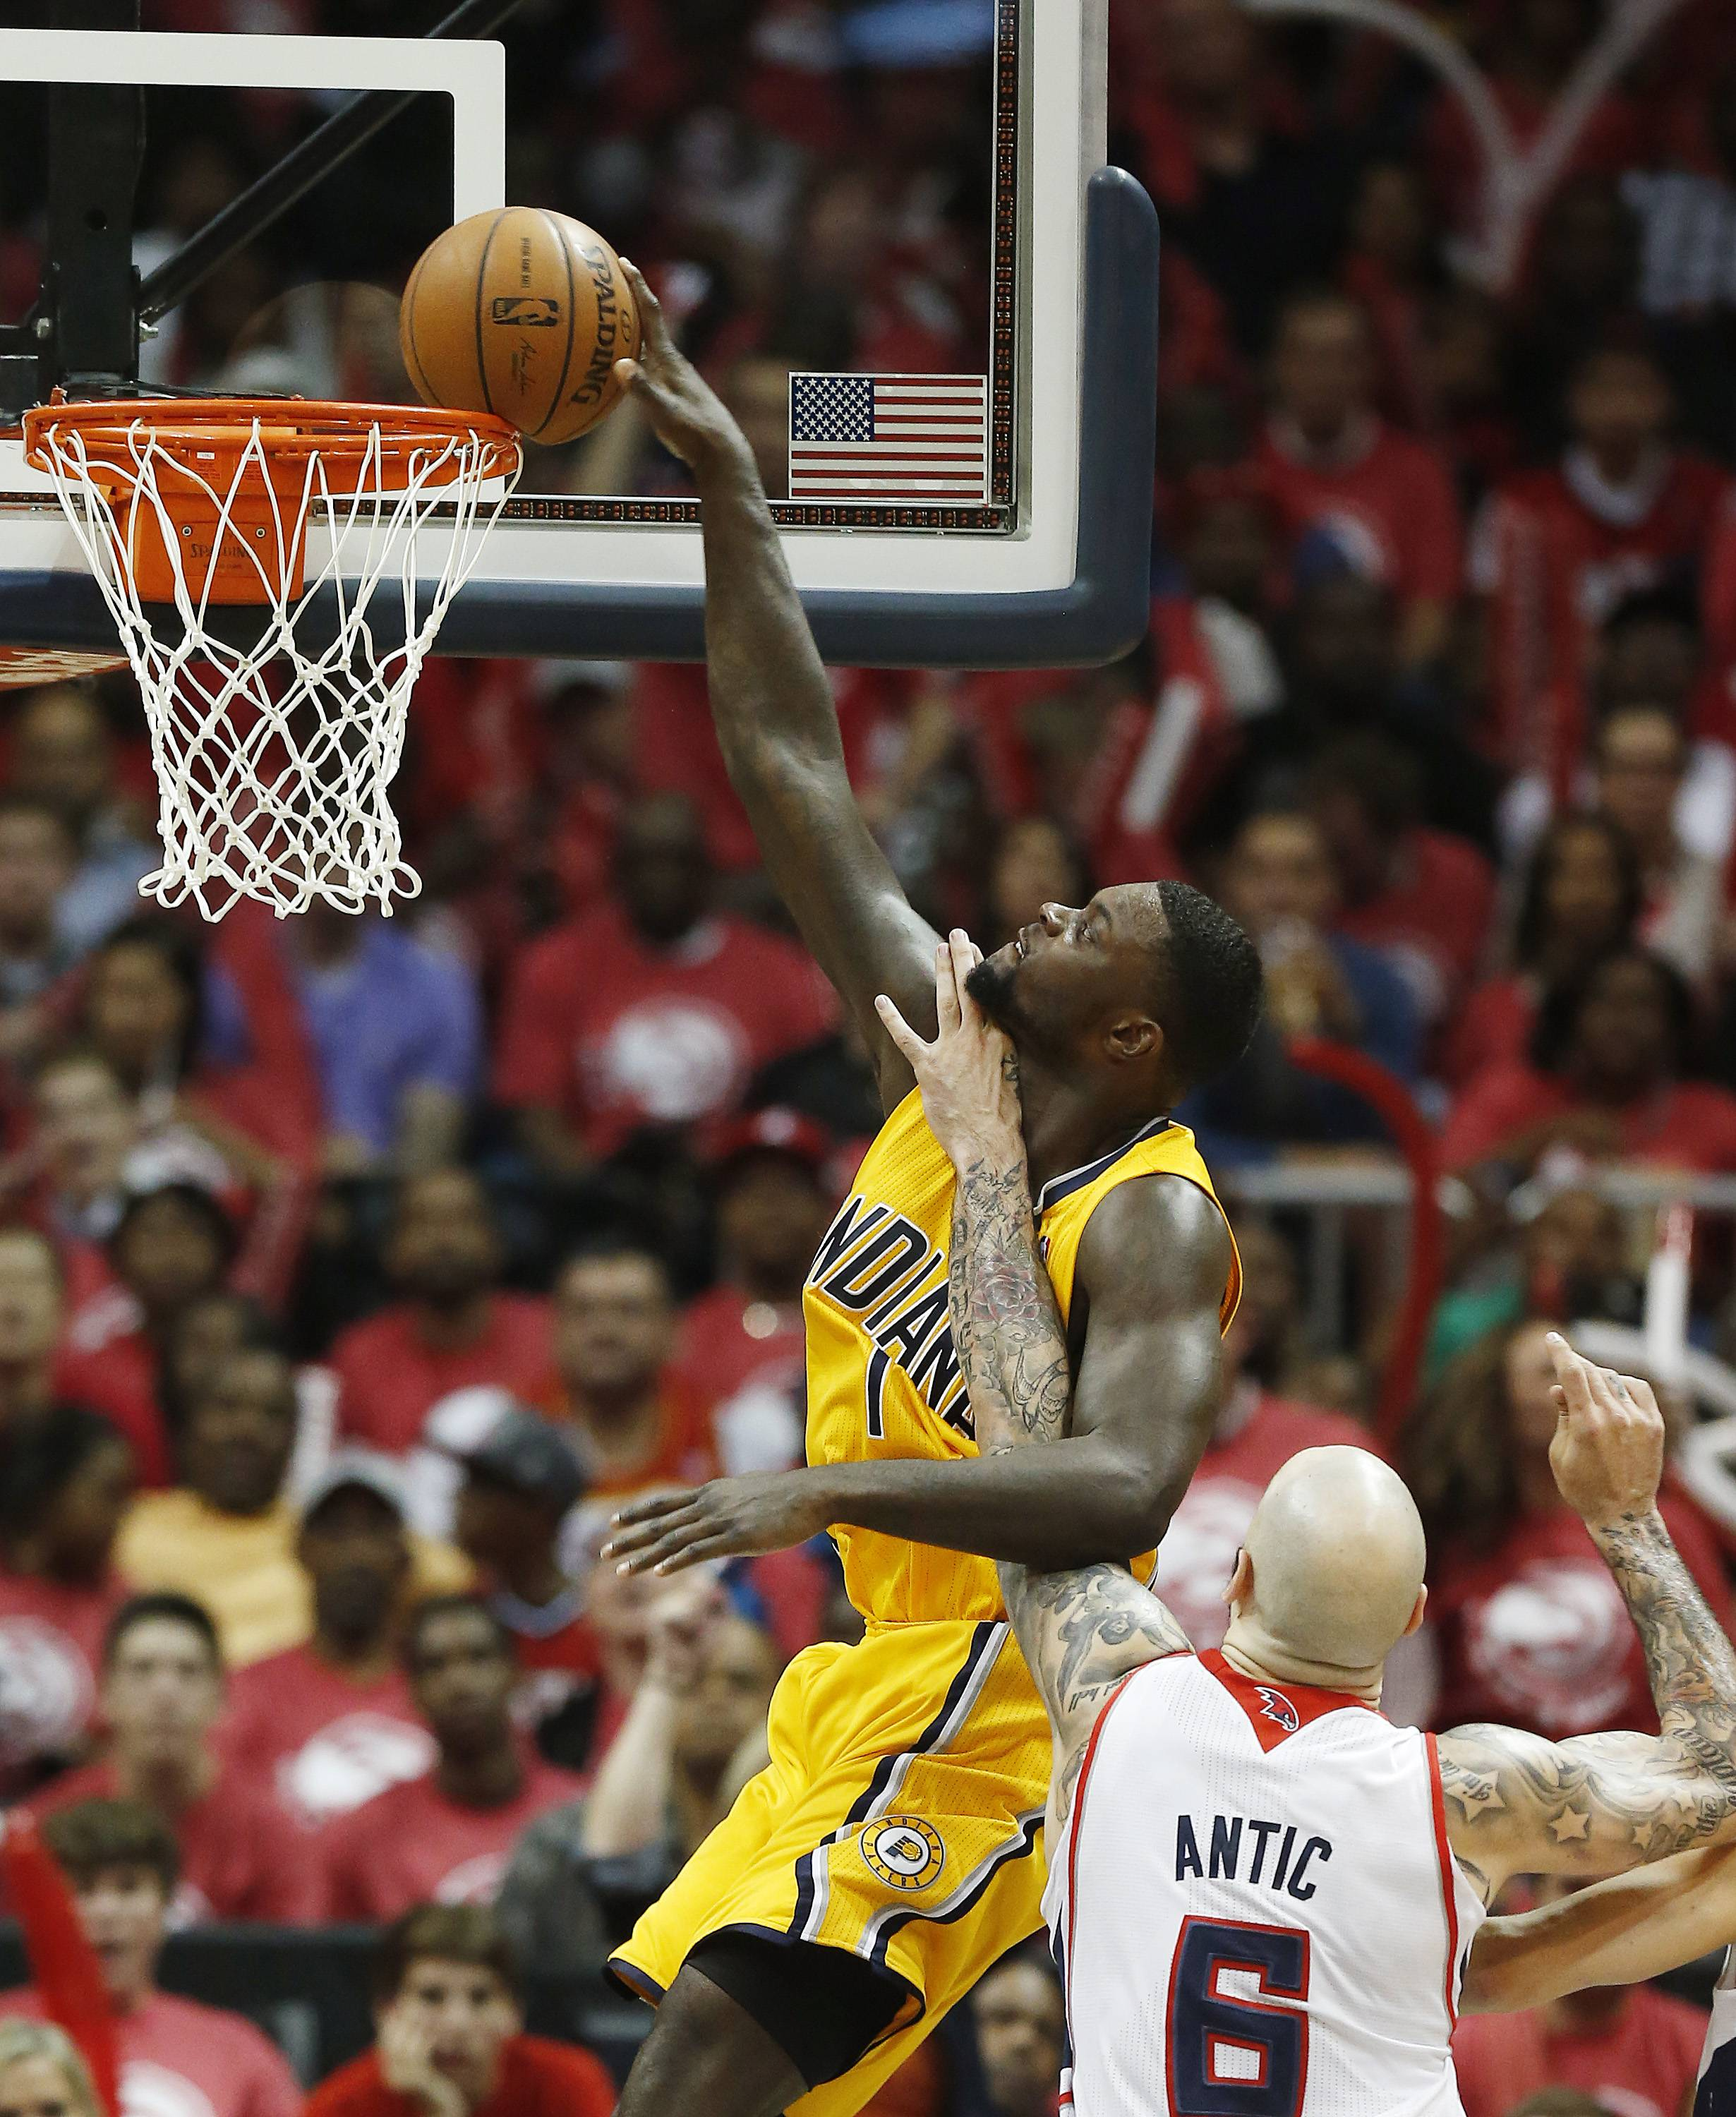 Indiana Pacers guard Lance Stephenson (1) is fouled by Atlanta Hawks center Pero Antic (6) while trying to score in the second half of Game 6 of a first-round NBA basketball playoff series in Atlanta, Thursday, May 1, 2014. Indiana won 95-88. (AP Photo/John Bazemore)